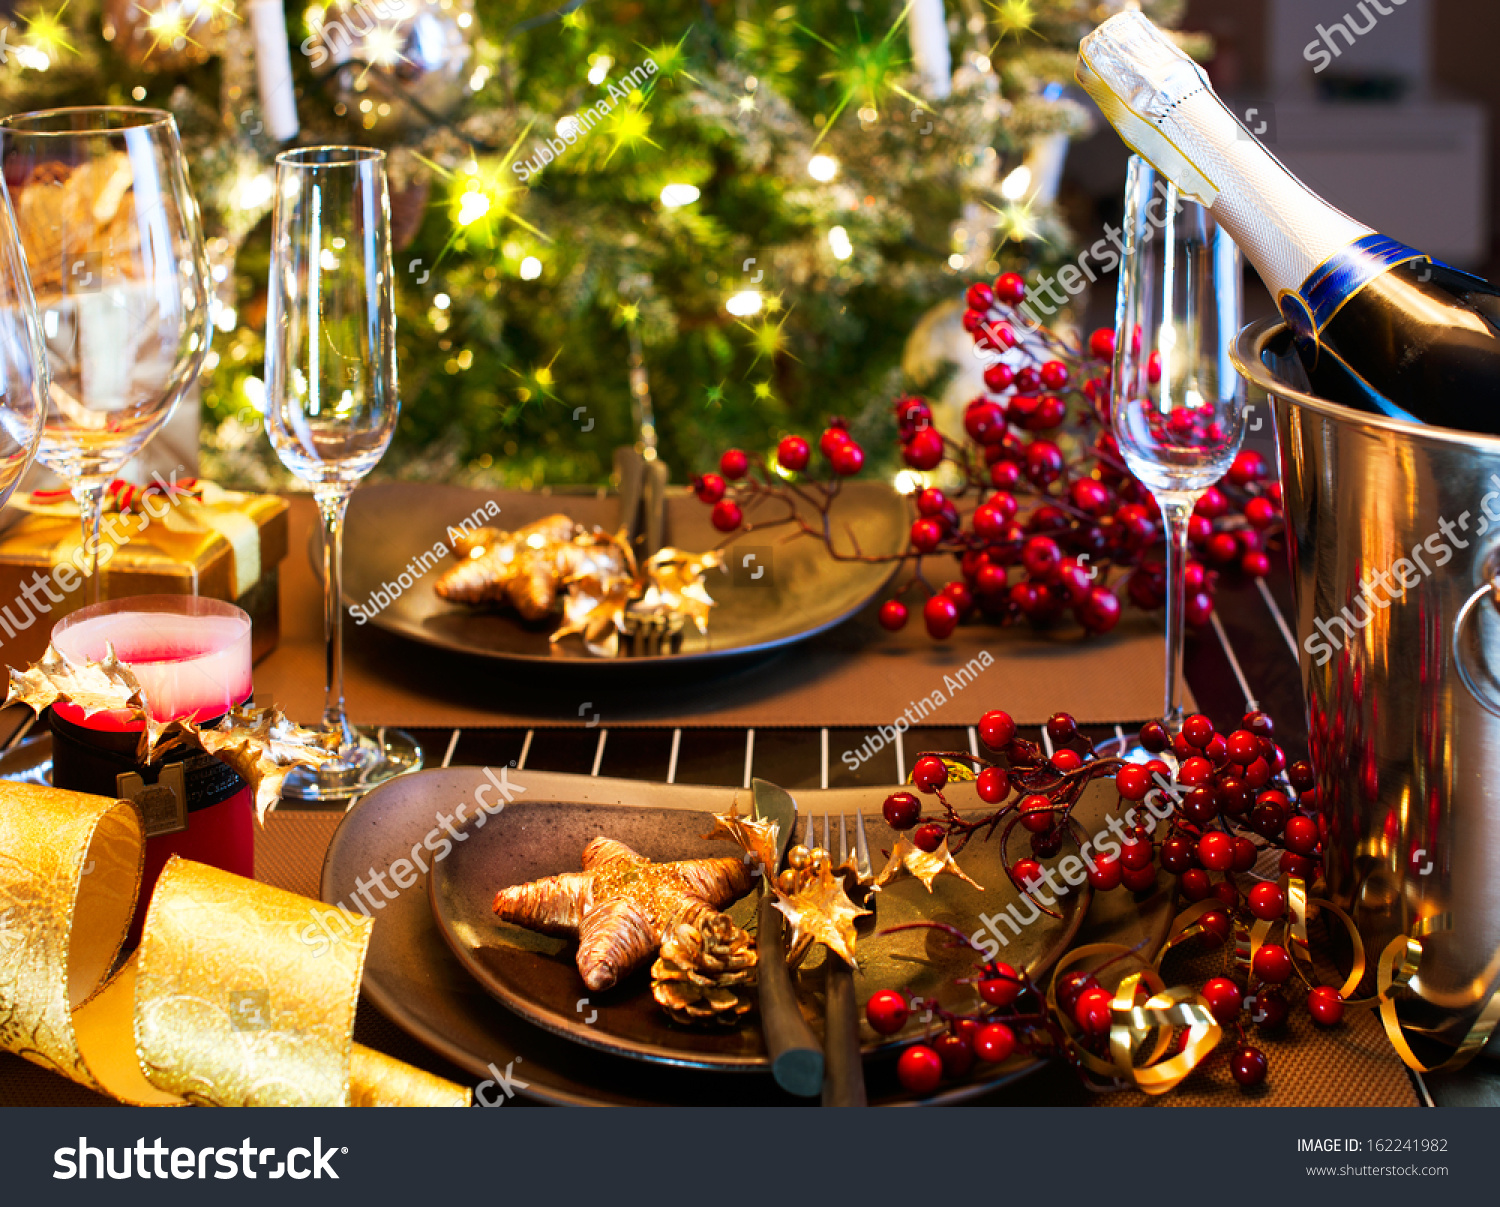 Christmas New Year Holiday Table Setting Stock Photo  : stock photo christmas and new year holiday table setting celebration place setting for christmas dinner 162241982 from www.shutterstock.com size 1500 x 1207 jpeg 942kB